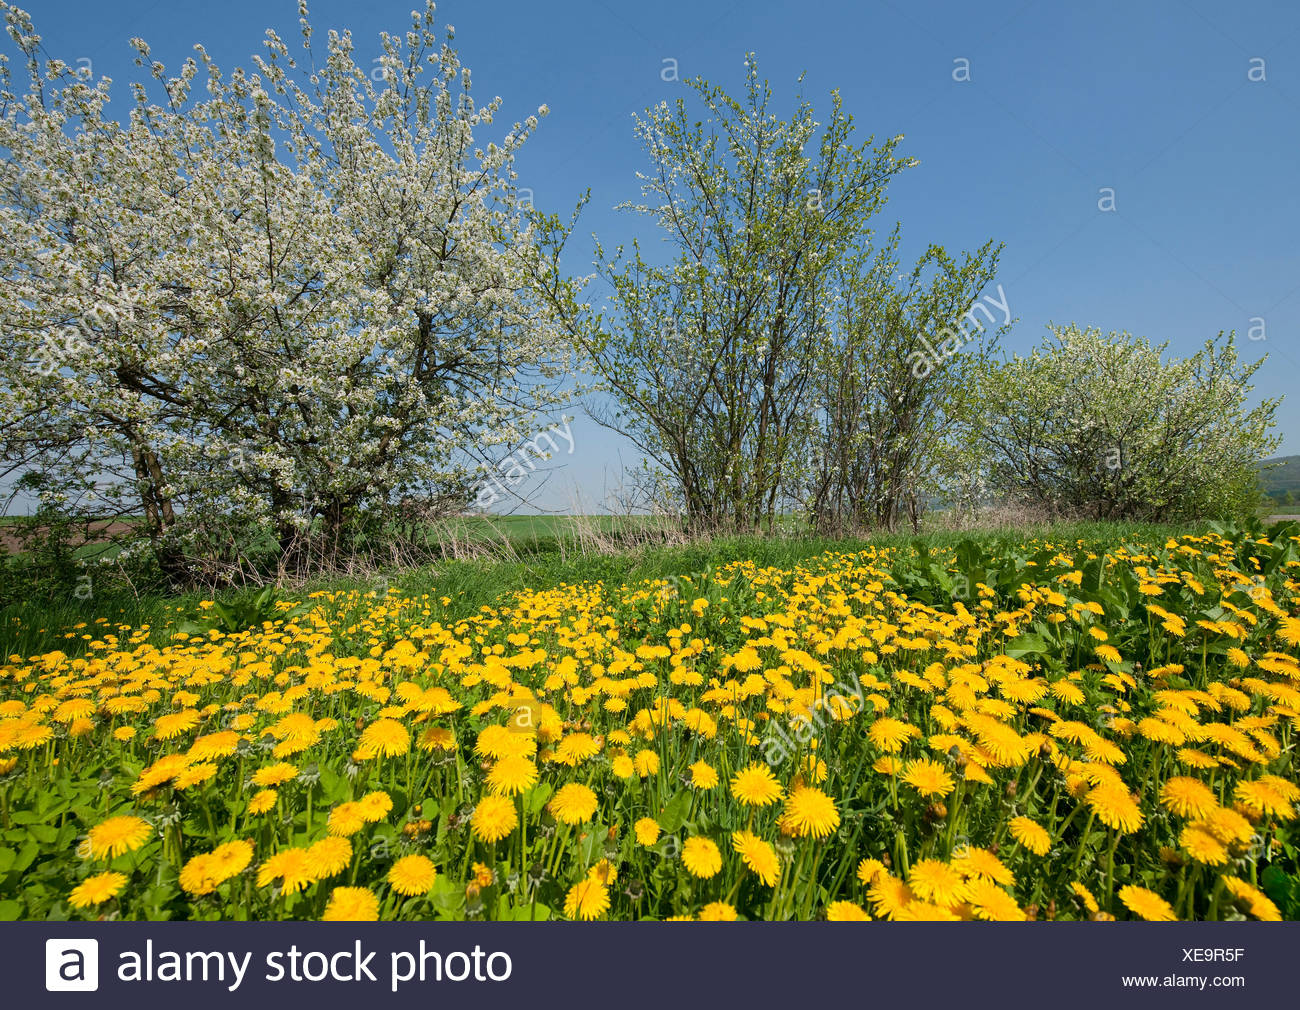 Blooming Dandelions (Taraxacum sect. Ruderalia) and flowering Blackthorn (Prunus spinosa), Thuringia, Germany - Stock Image